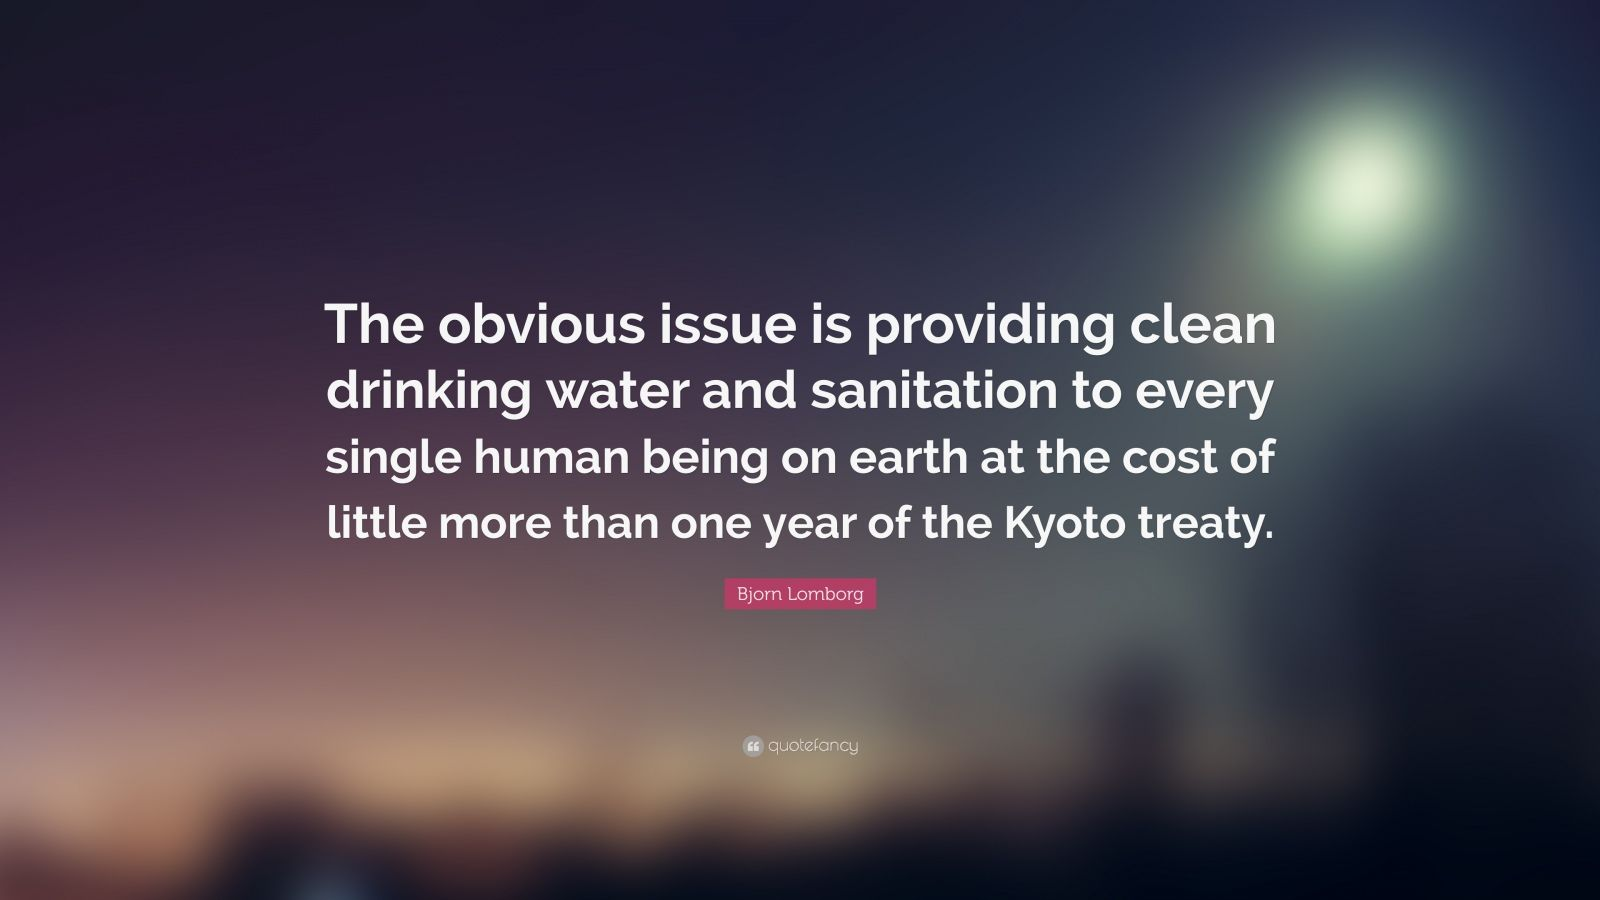 """Bjorn Lomborg Quote: """"The obvious issue is providing clean drinking water and sanitation to every single human being on earth at the cost of little more than one year of the Kyoto treaty."""""""